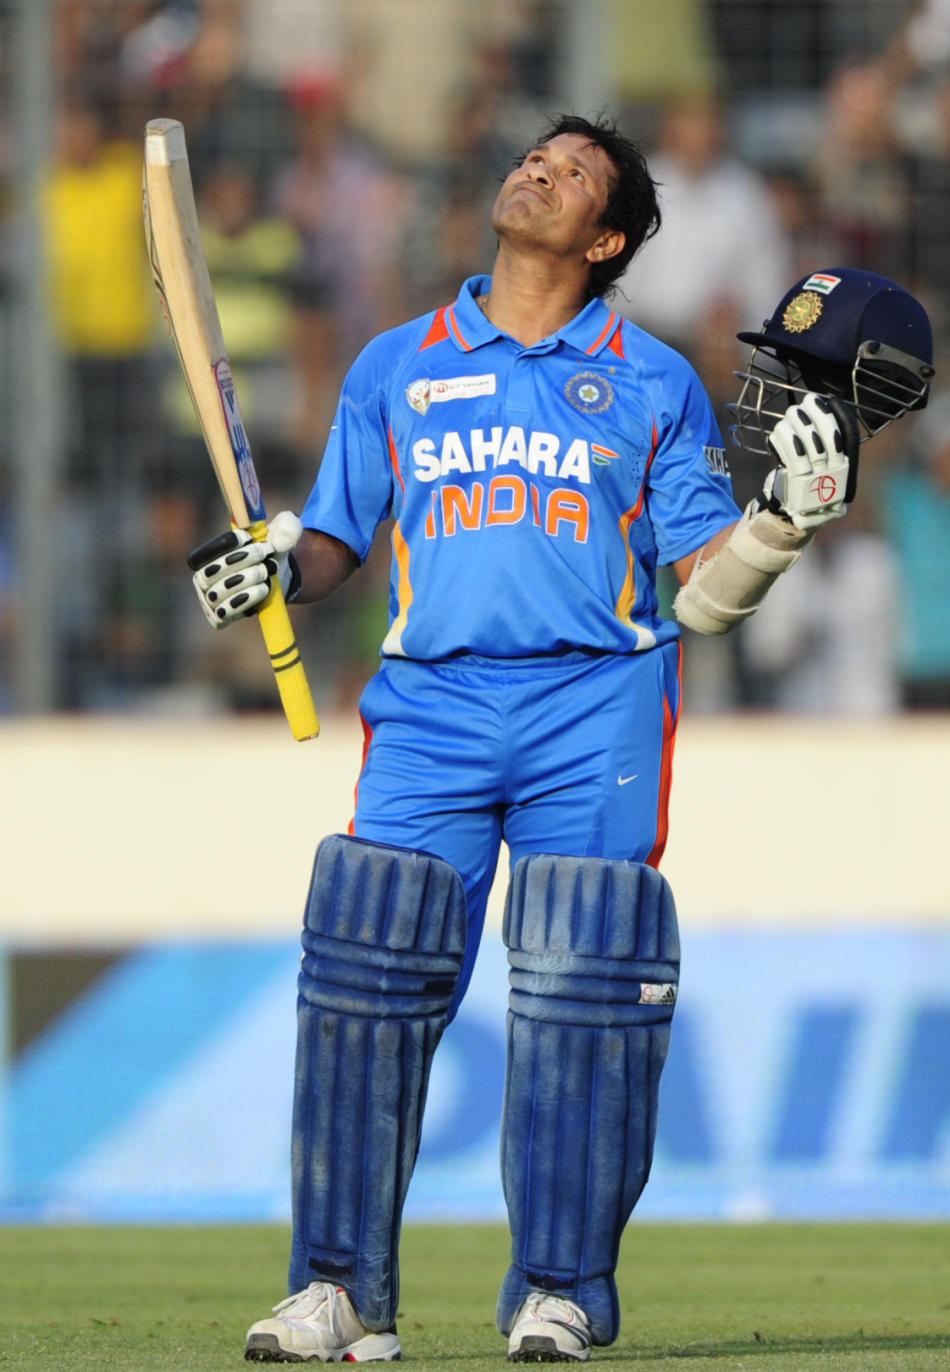 Indian batsman Sachin Tendulkar reacts after scoring his hundred century during the one day international (ODI) Asia Cup cricket match between India and Bangladesh at the Sher-e-Bangla National Cricke